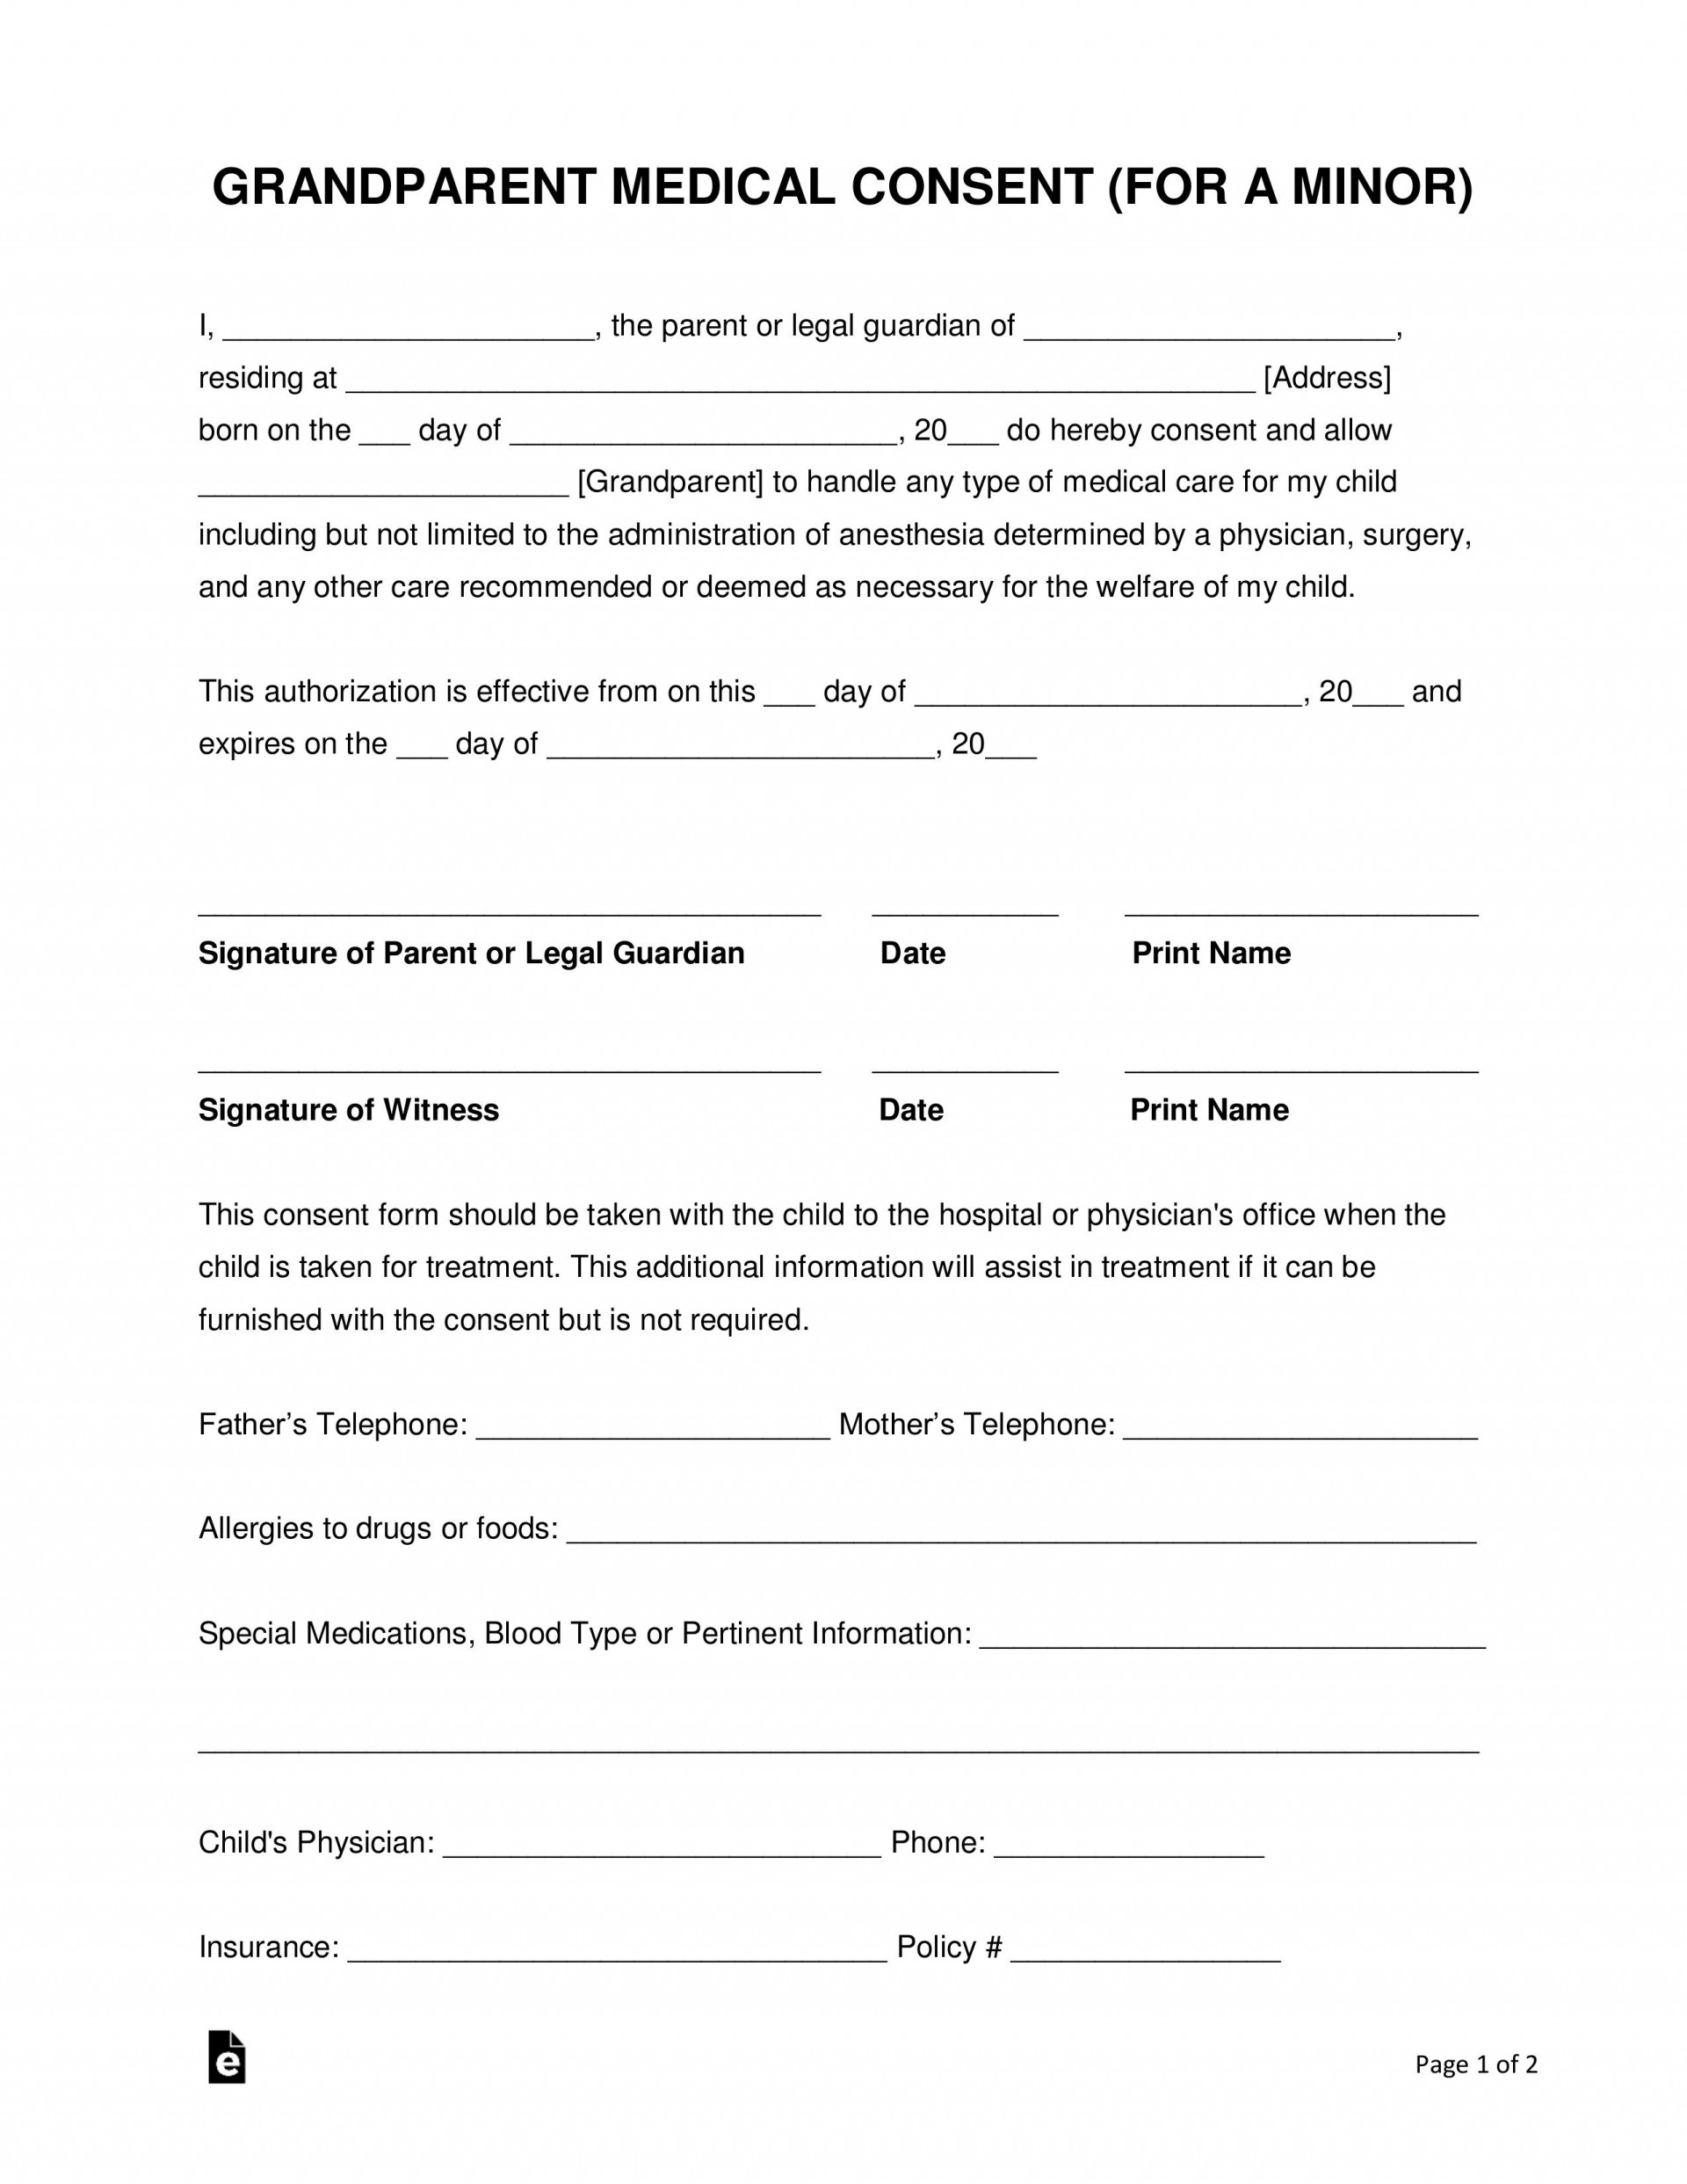 007 Incredible Medical Consent Form Template Sample  Templates Free1920